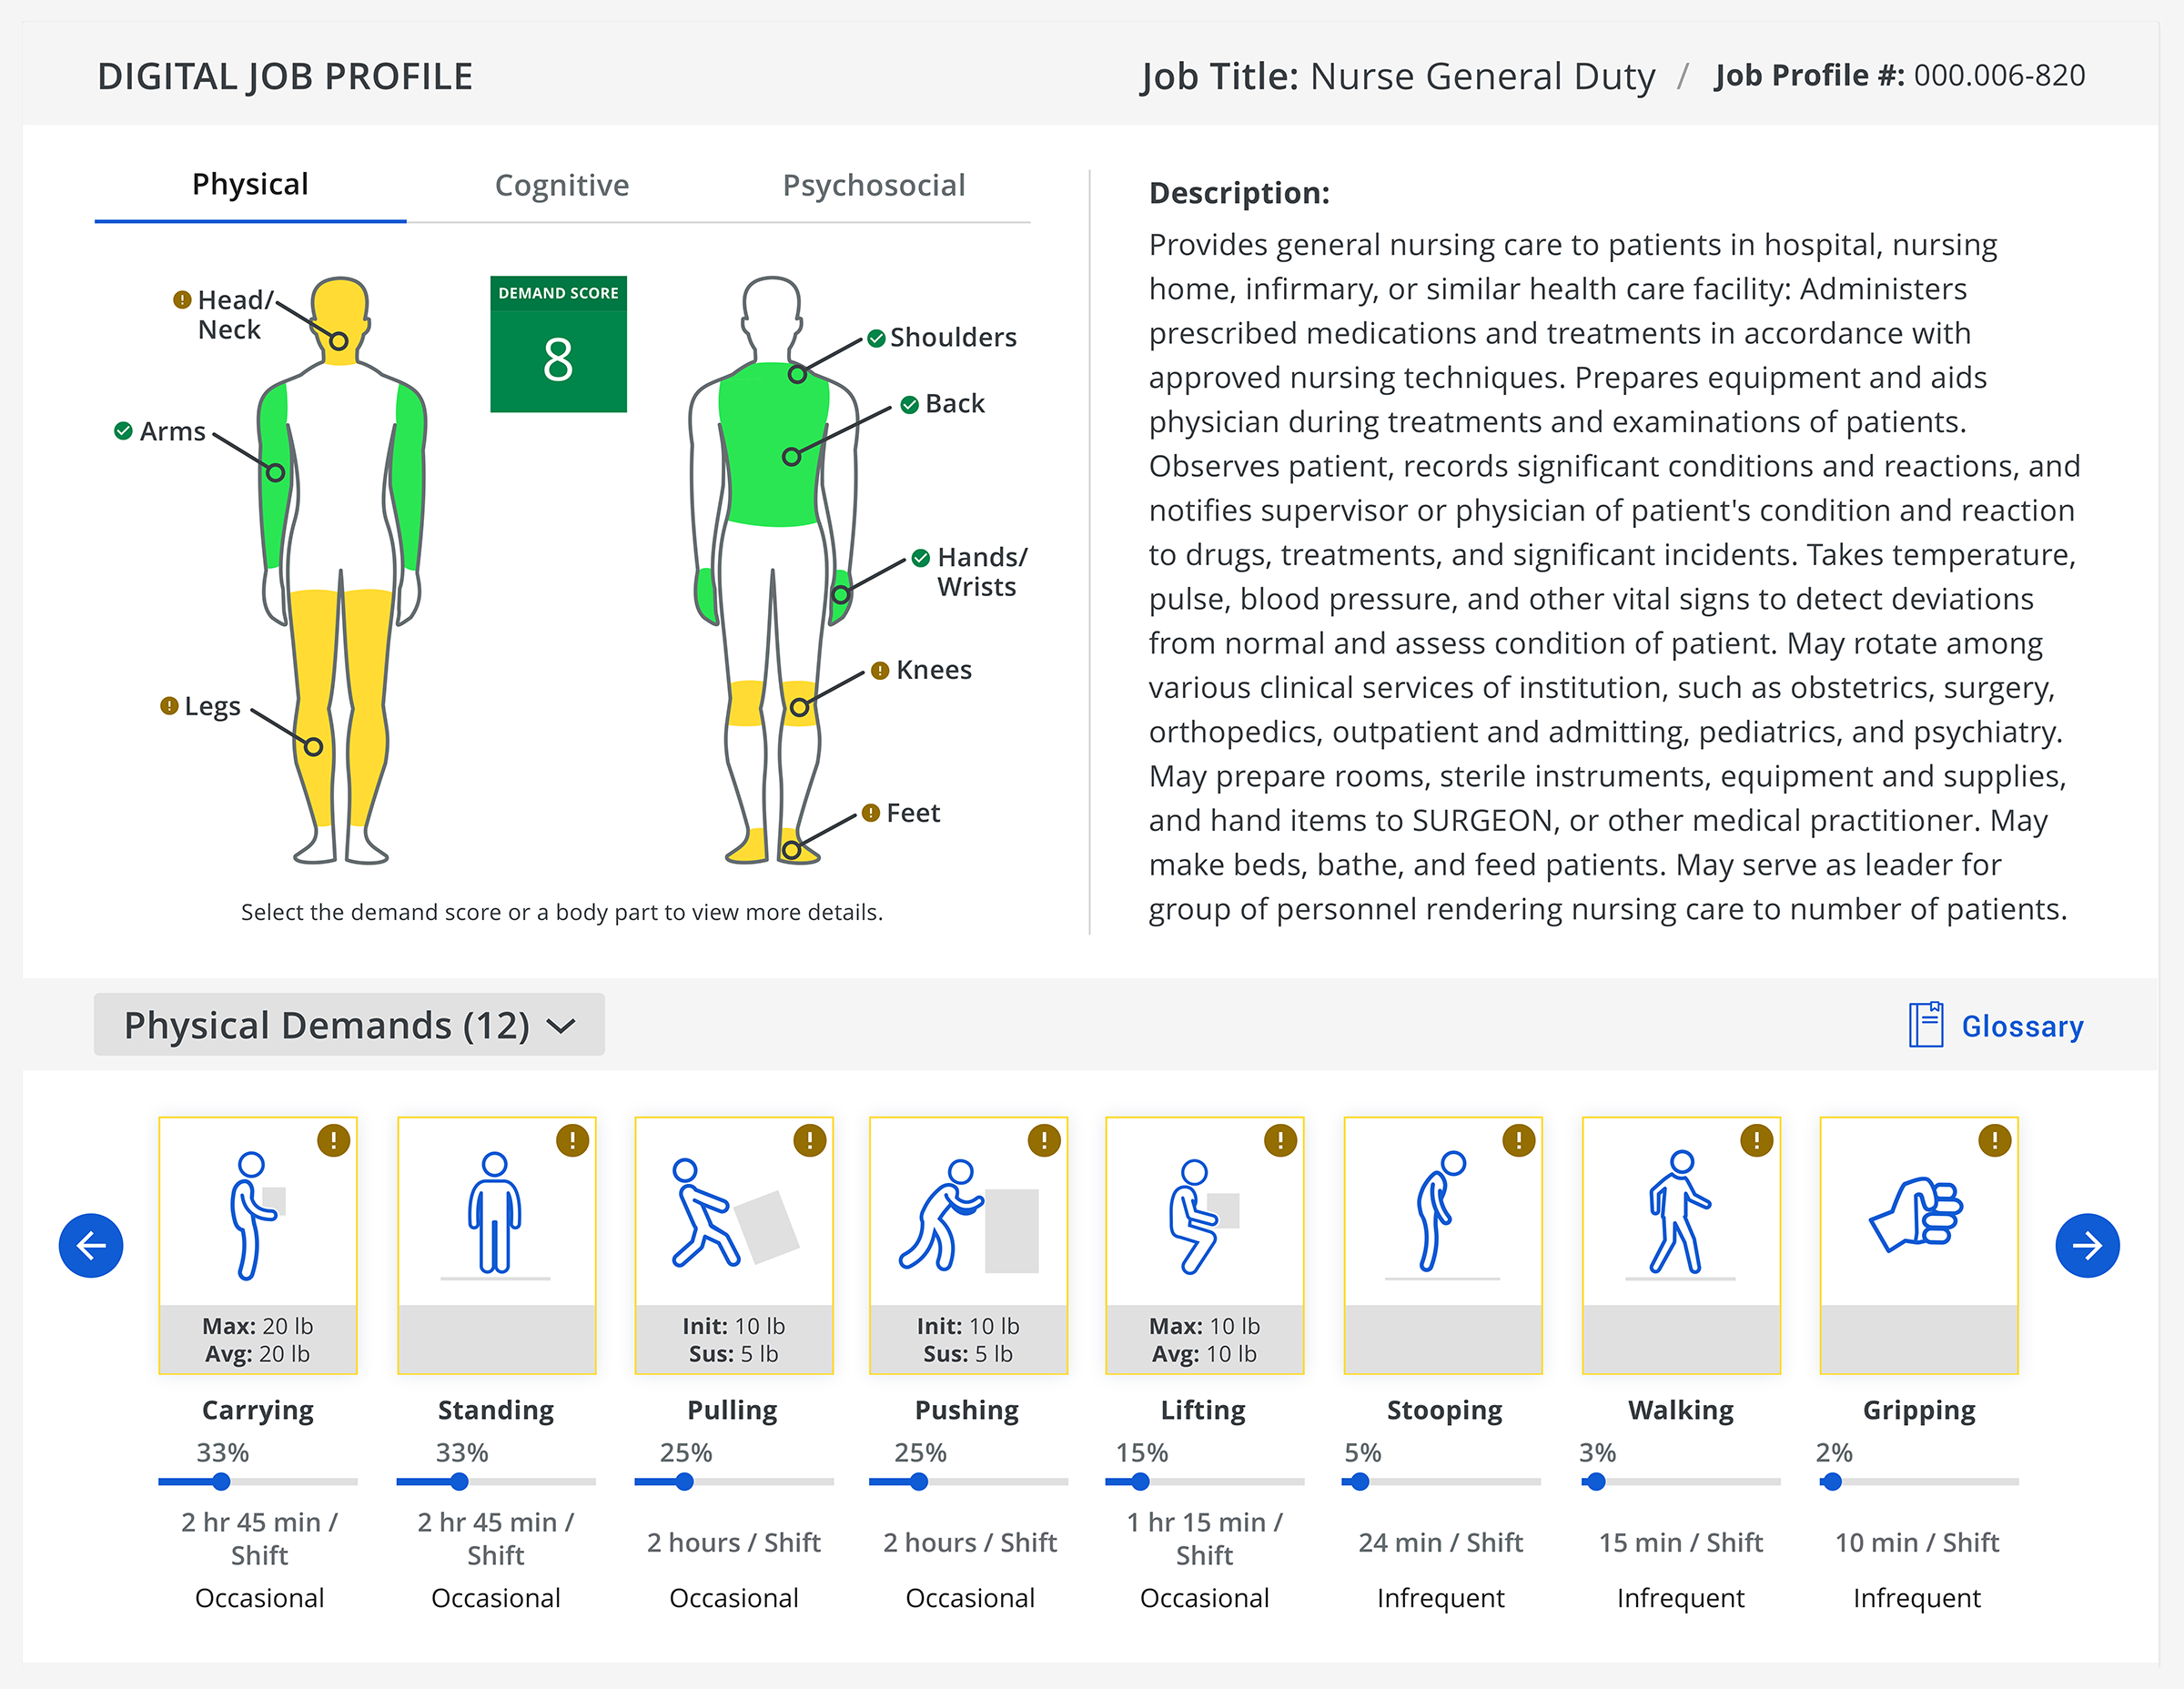 Digital Job Profile example